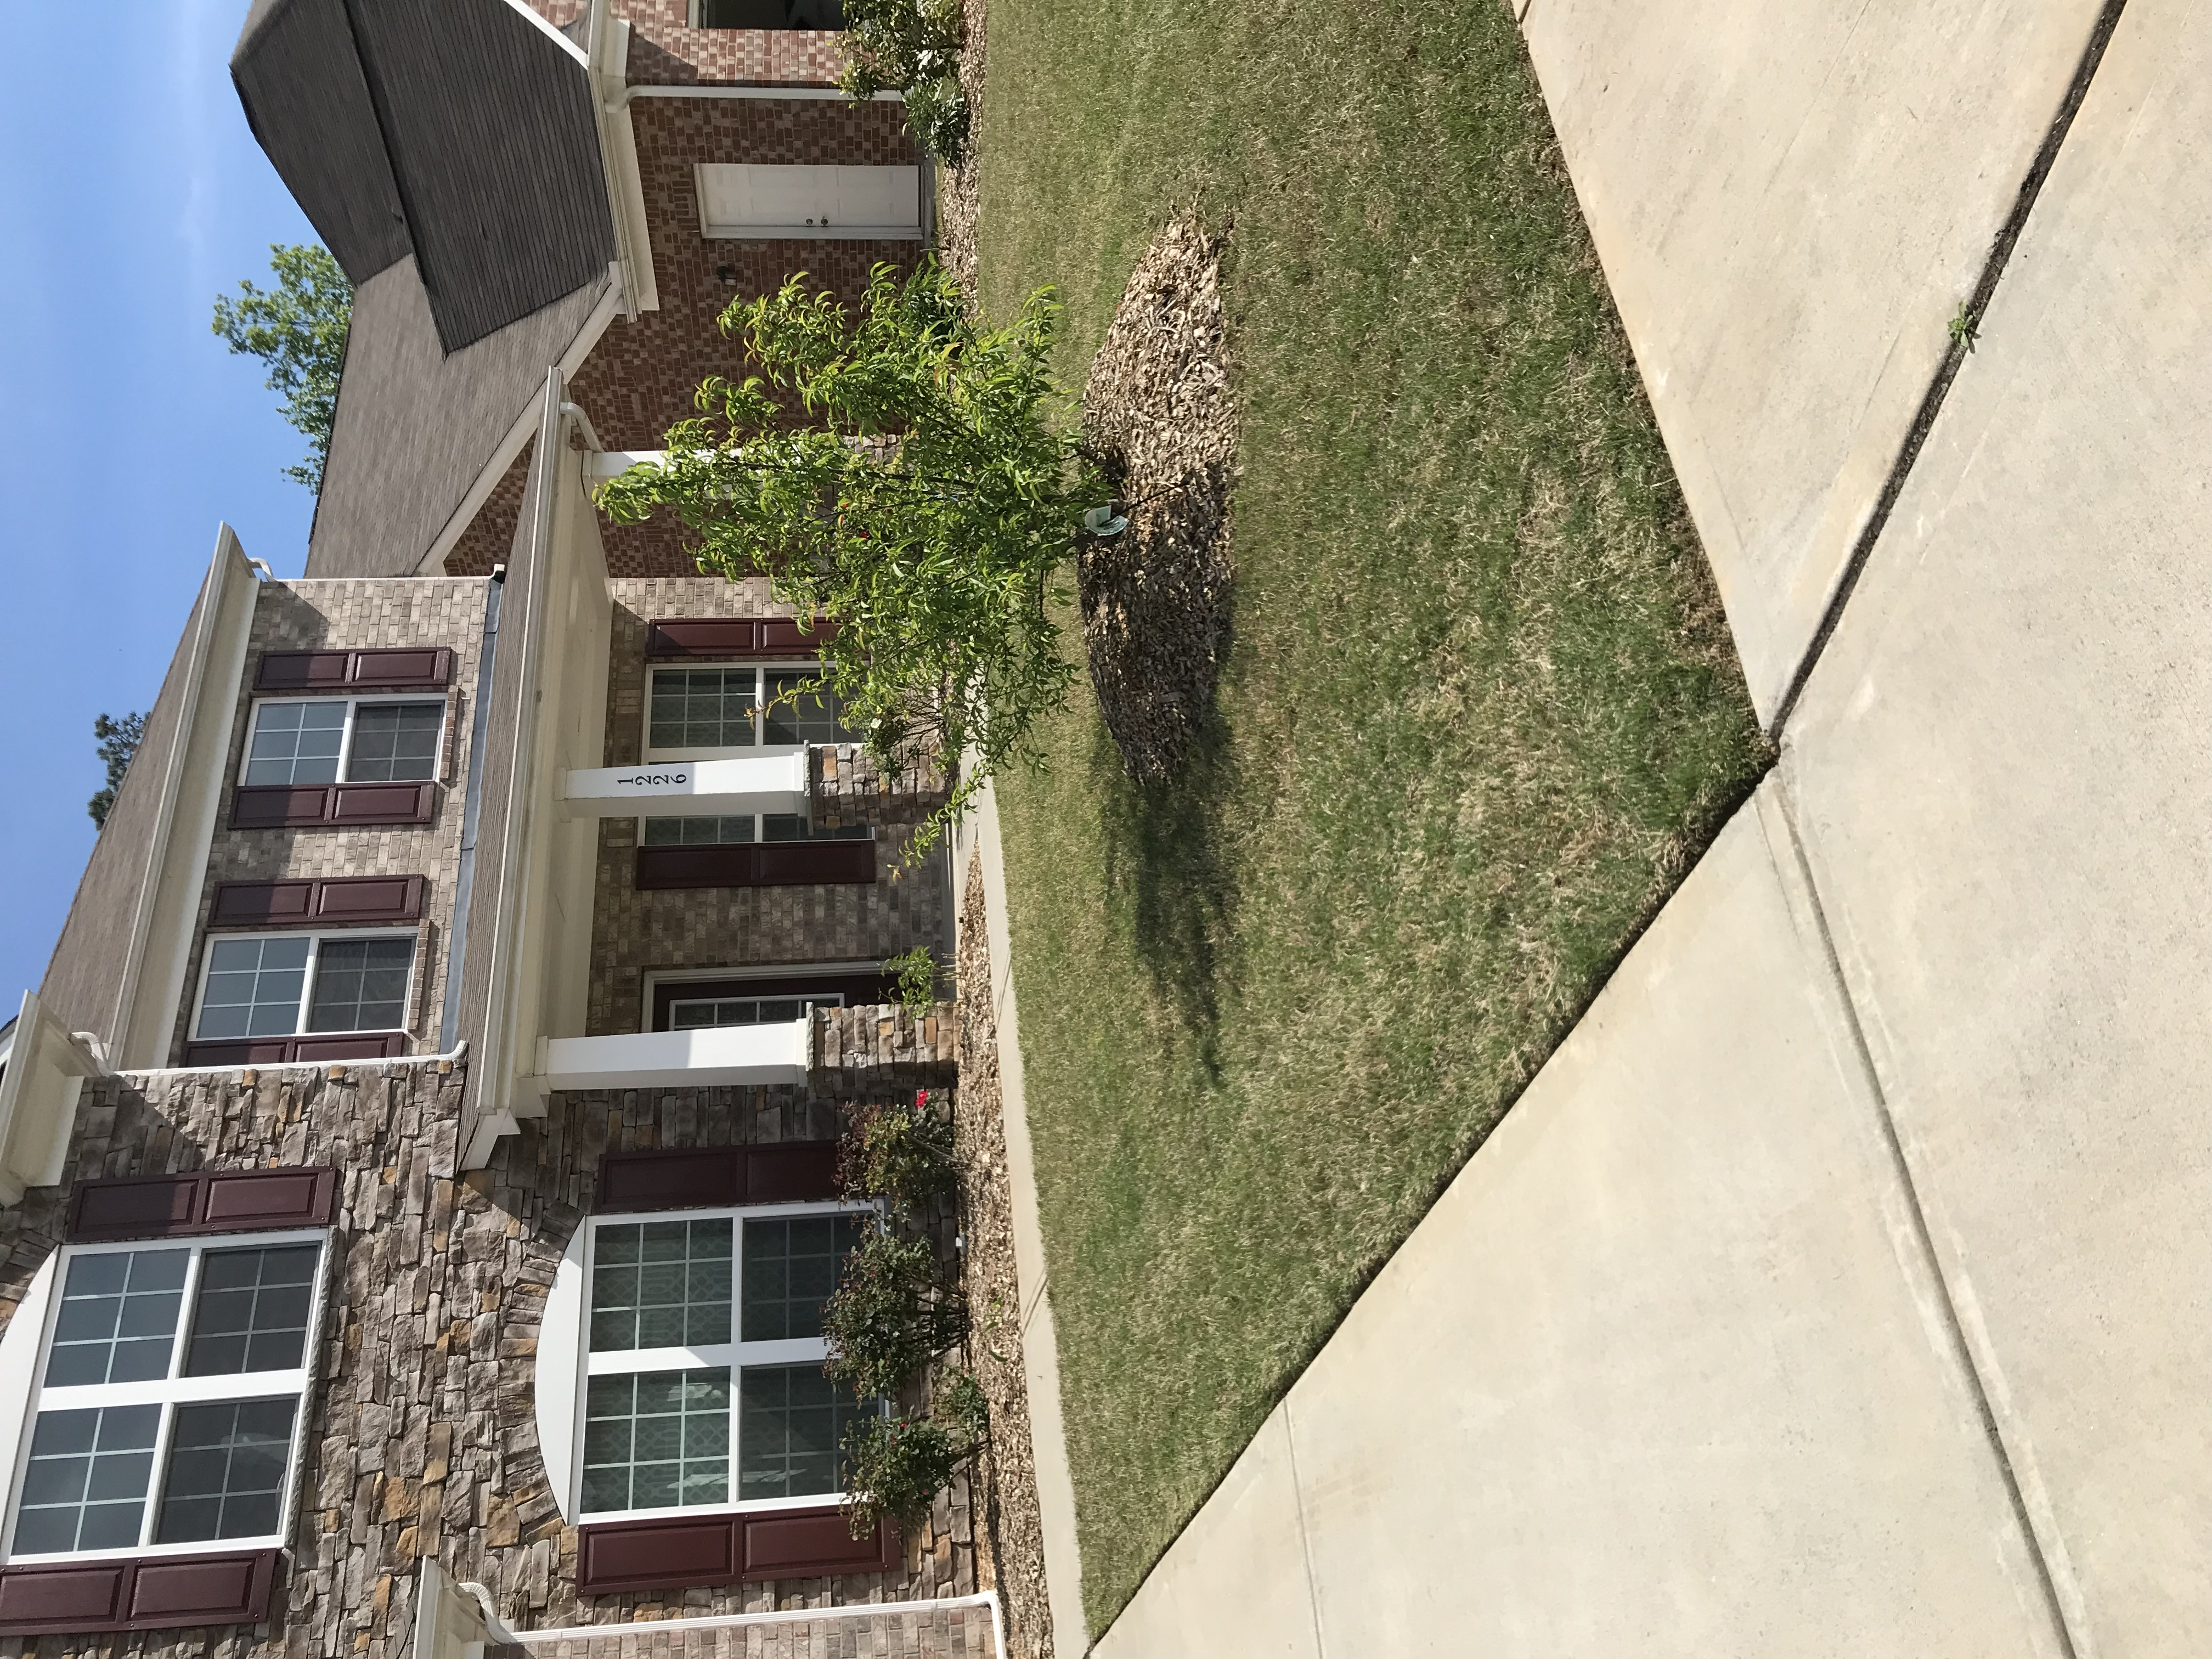 Yard mowing company in Lawrenceville , GA, 30044